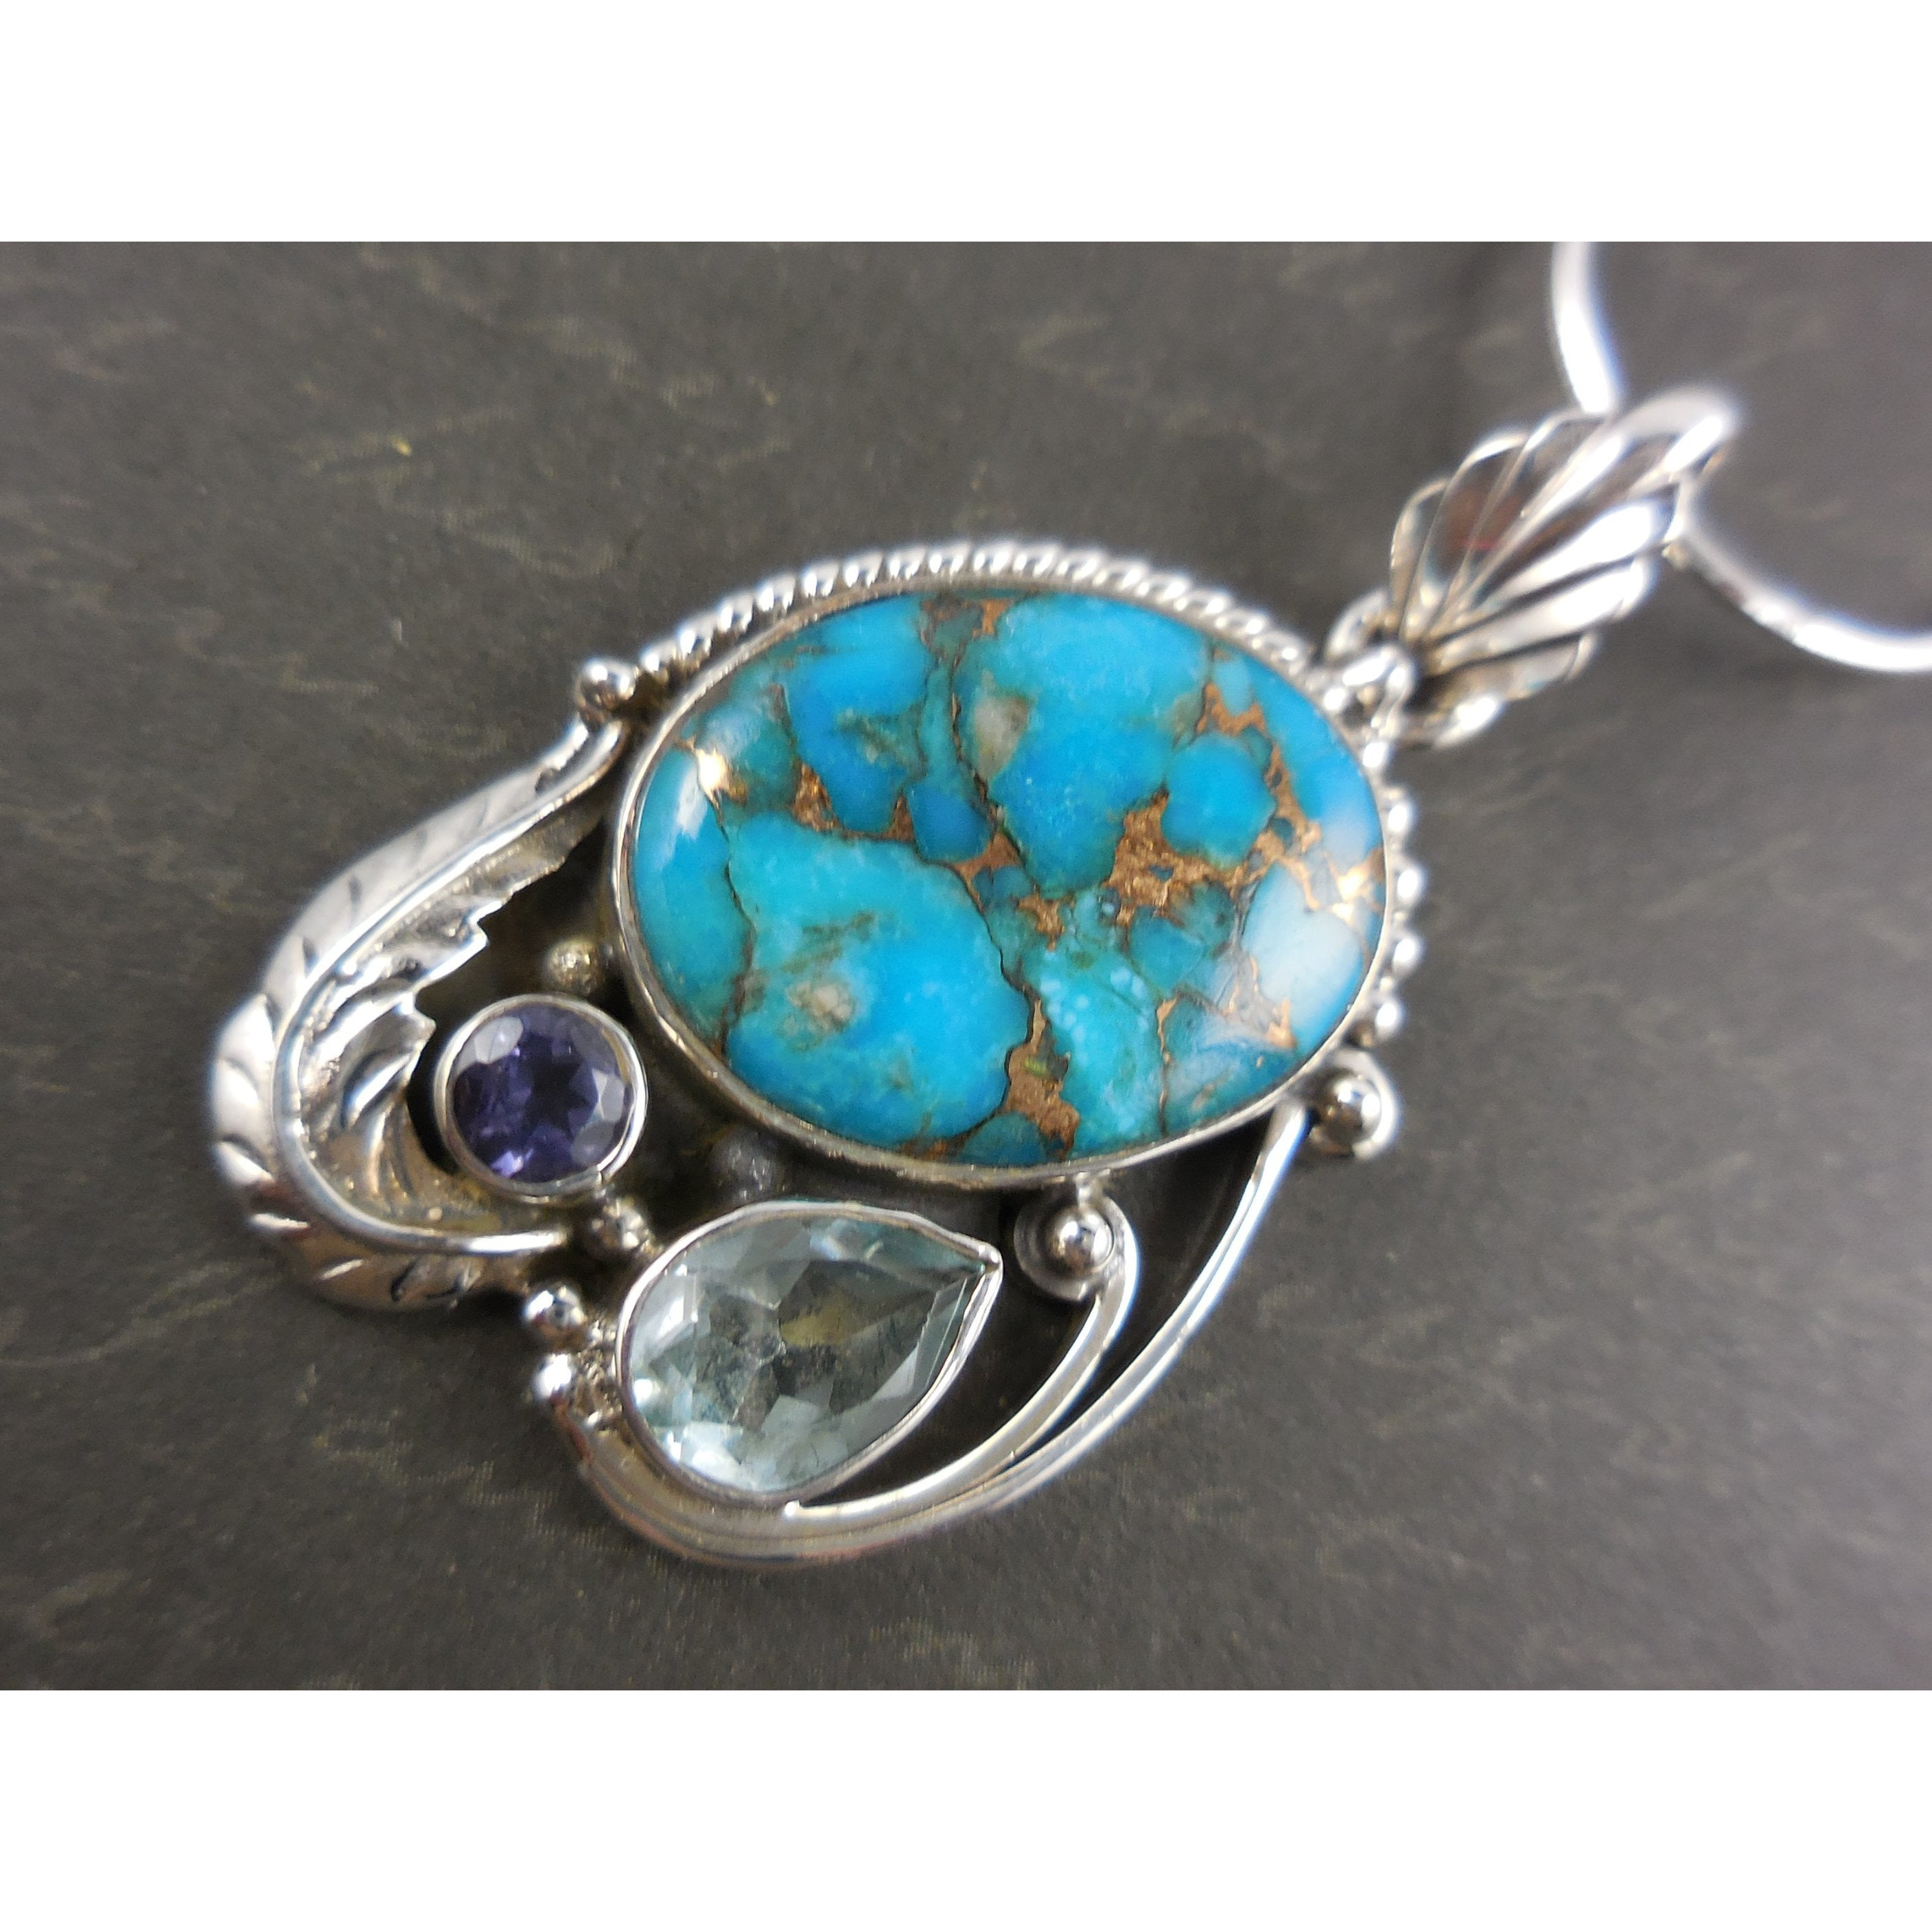 Turquoise, Iolite, & Blue Topaz .925 Sterling Silver Pendant/Necklace